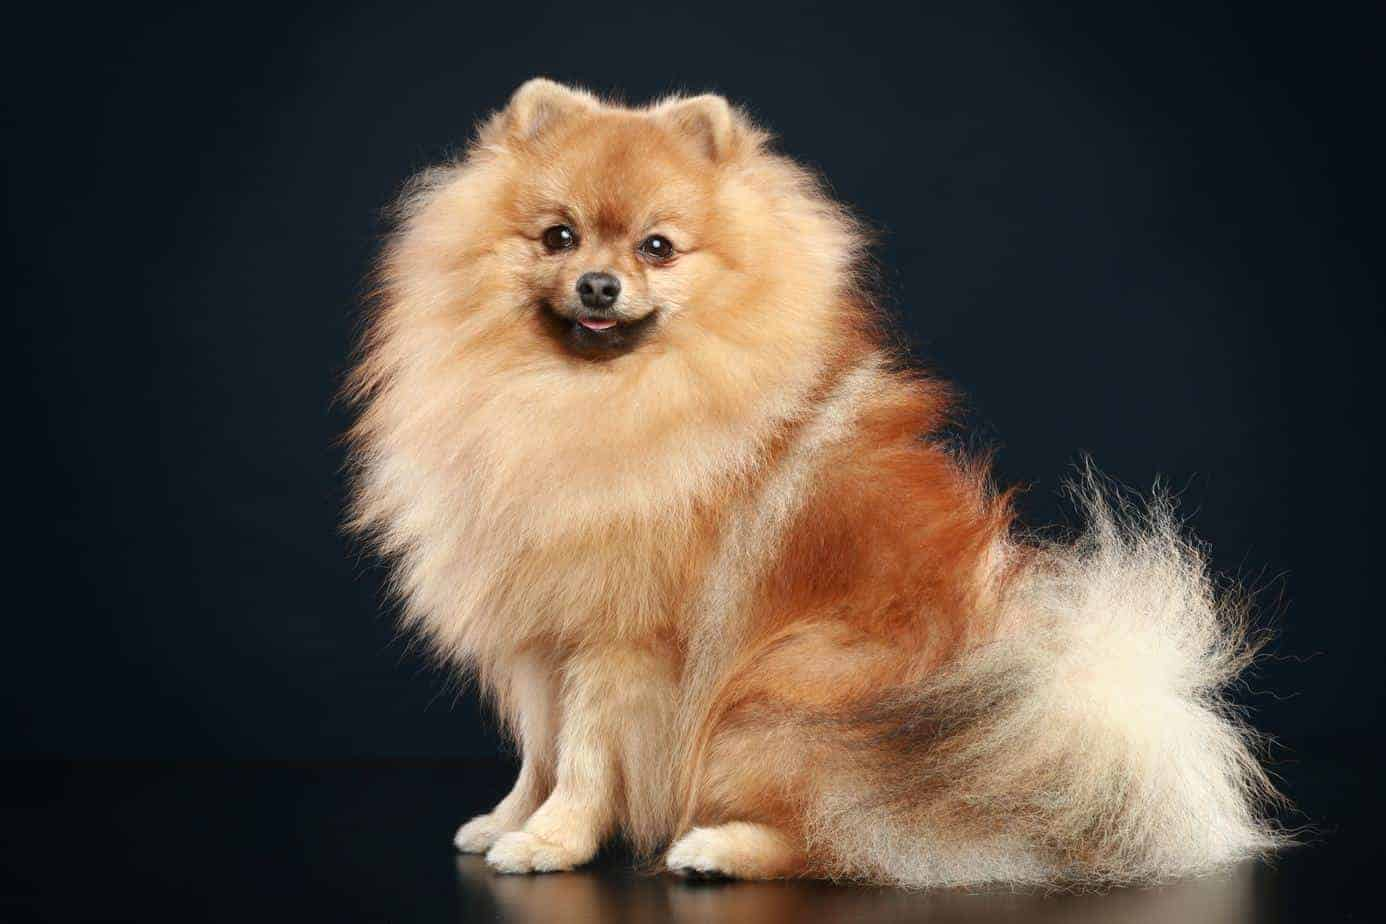 The German Spitz, with its foxlike face and fluffy double coat, is an easy-to-train dog who is eager to please.